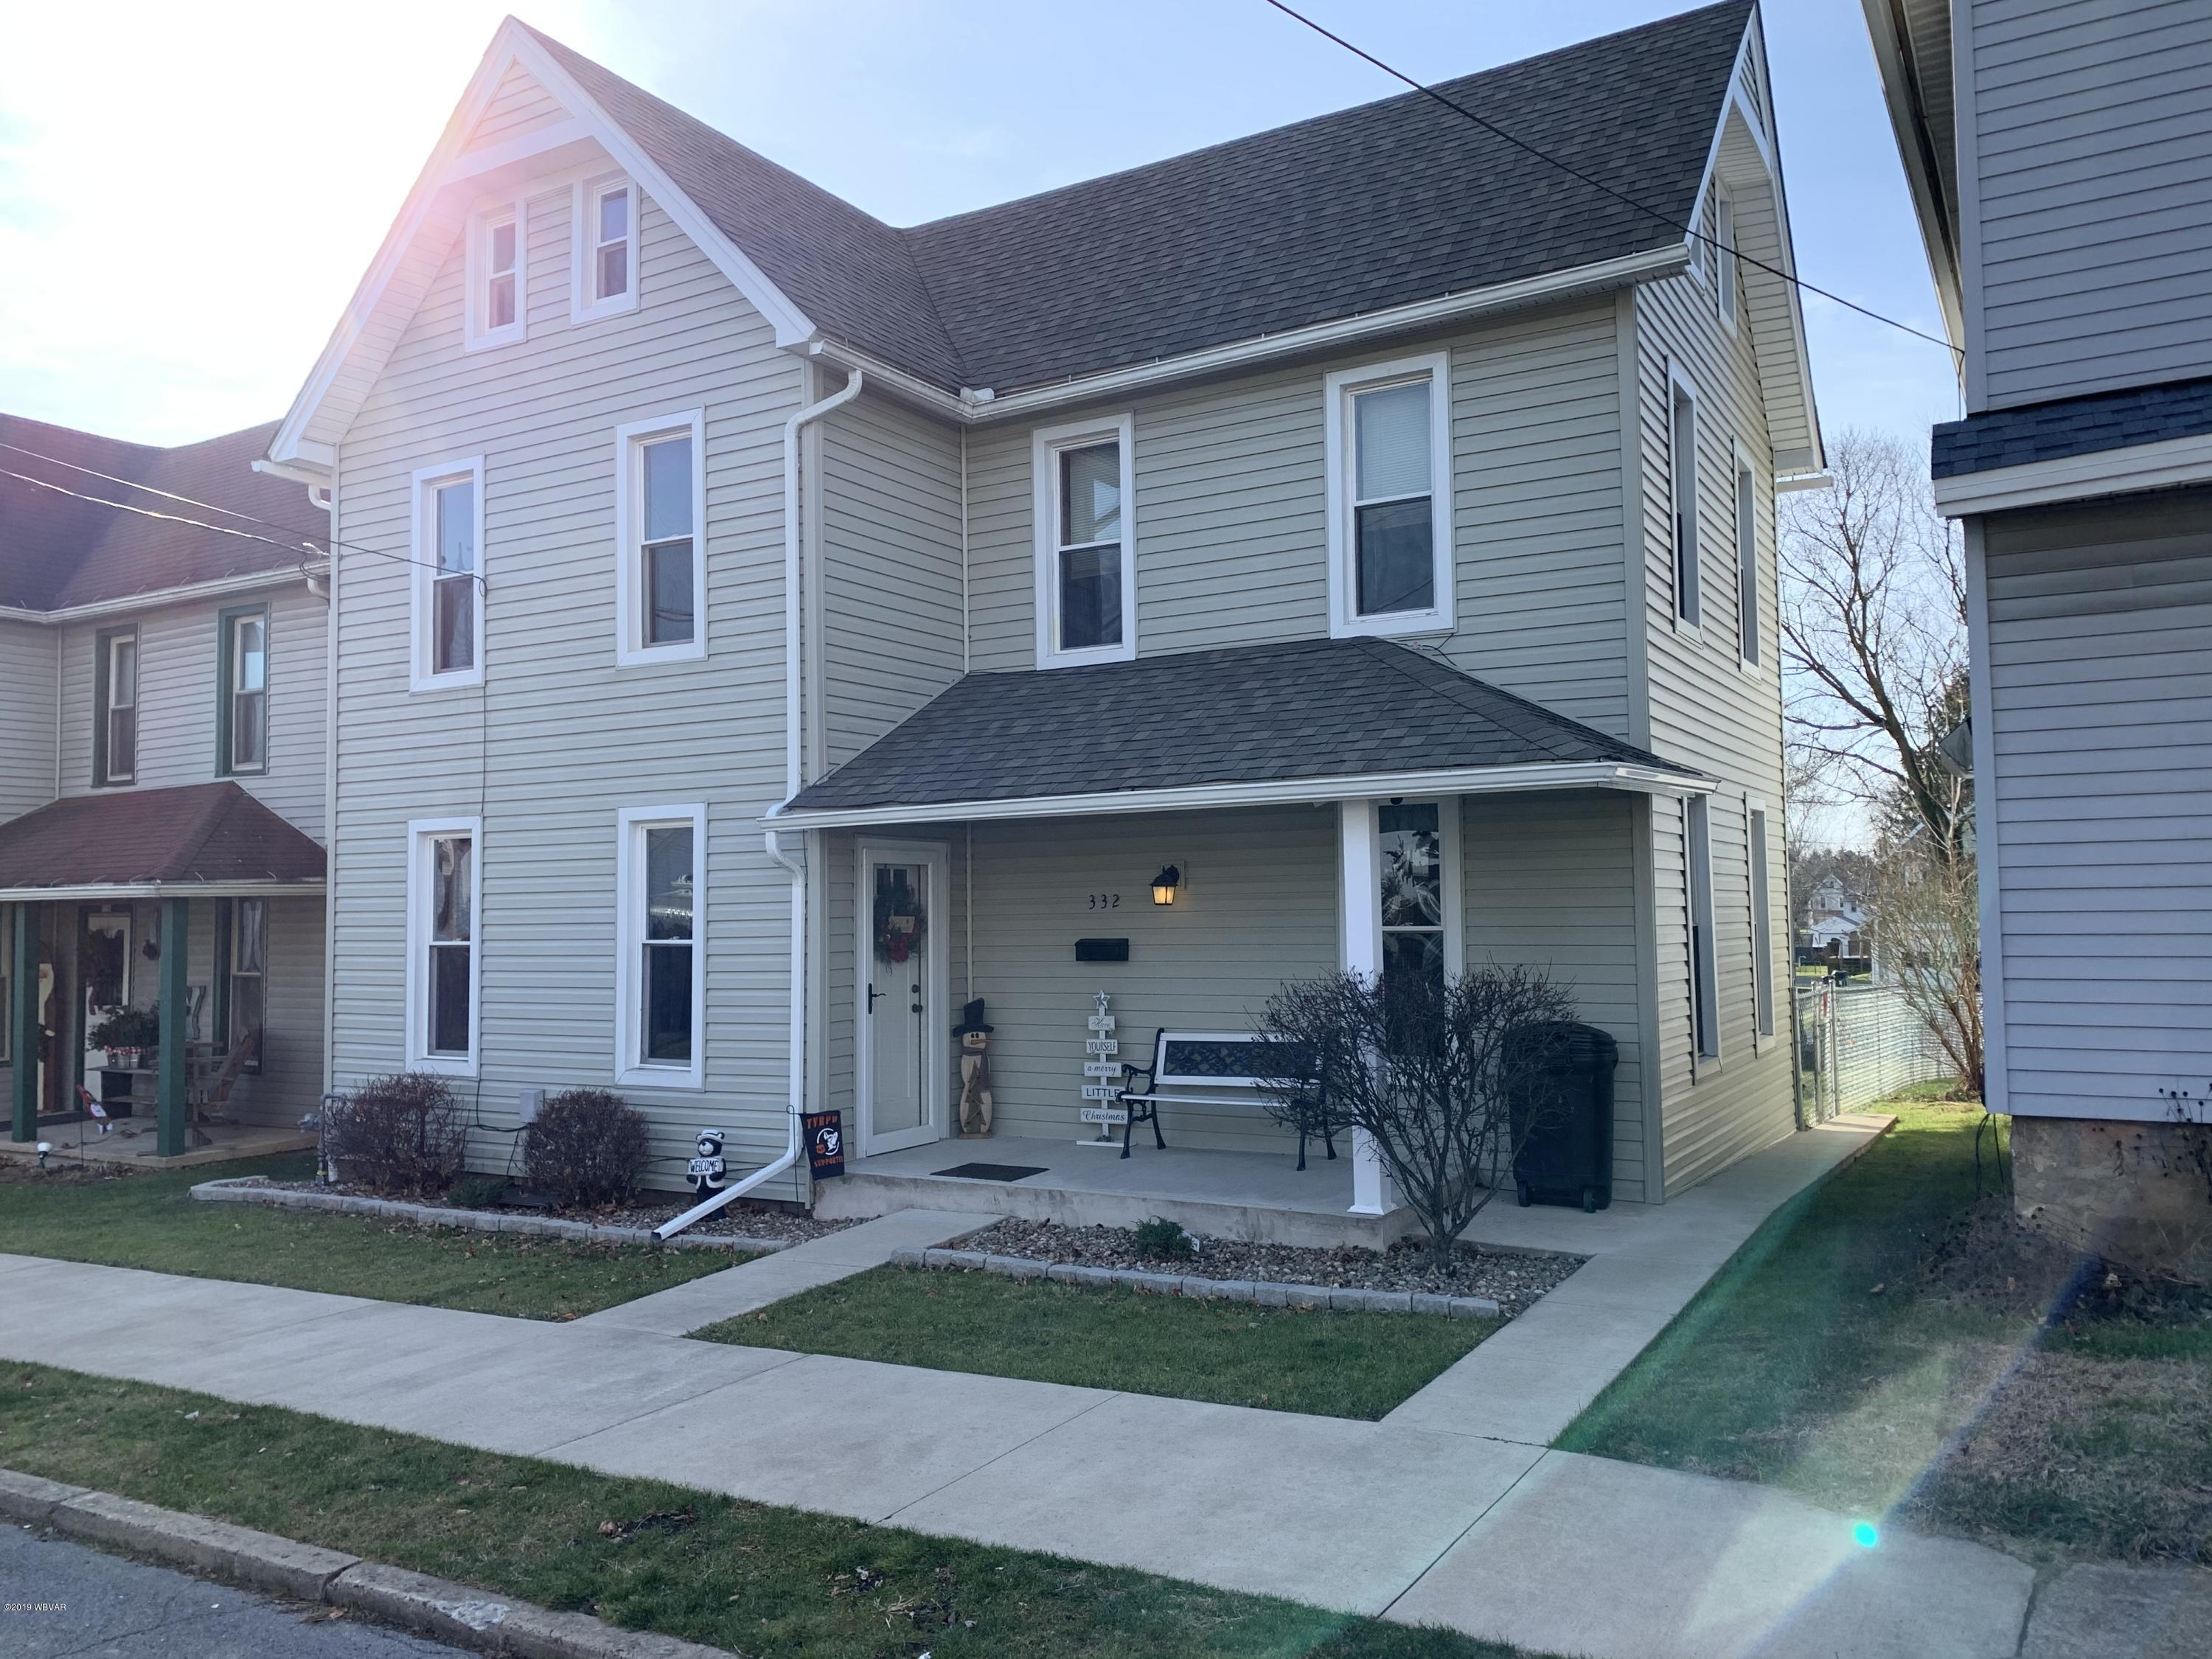 332 GLOVER STREET,Jersey Shore,PA 17740,3 Bedrooms Bedrooms,1 BathroomBathrooms,Residential,GLOVER,WB-89237